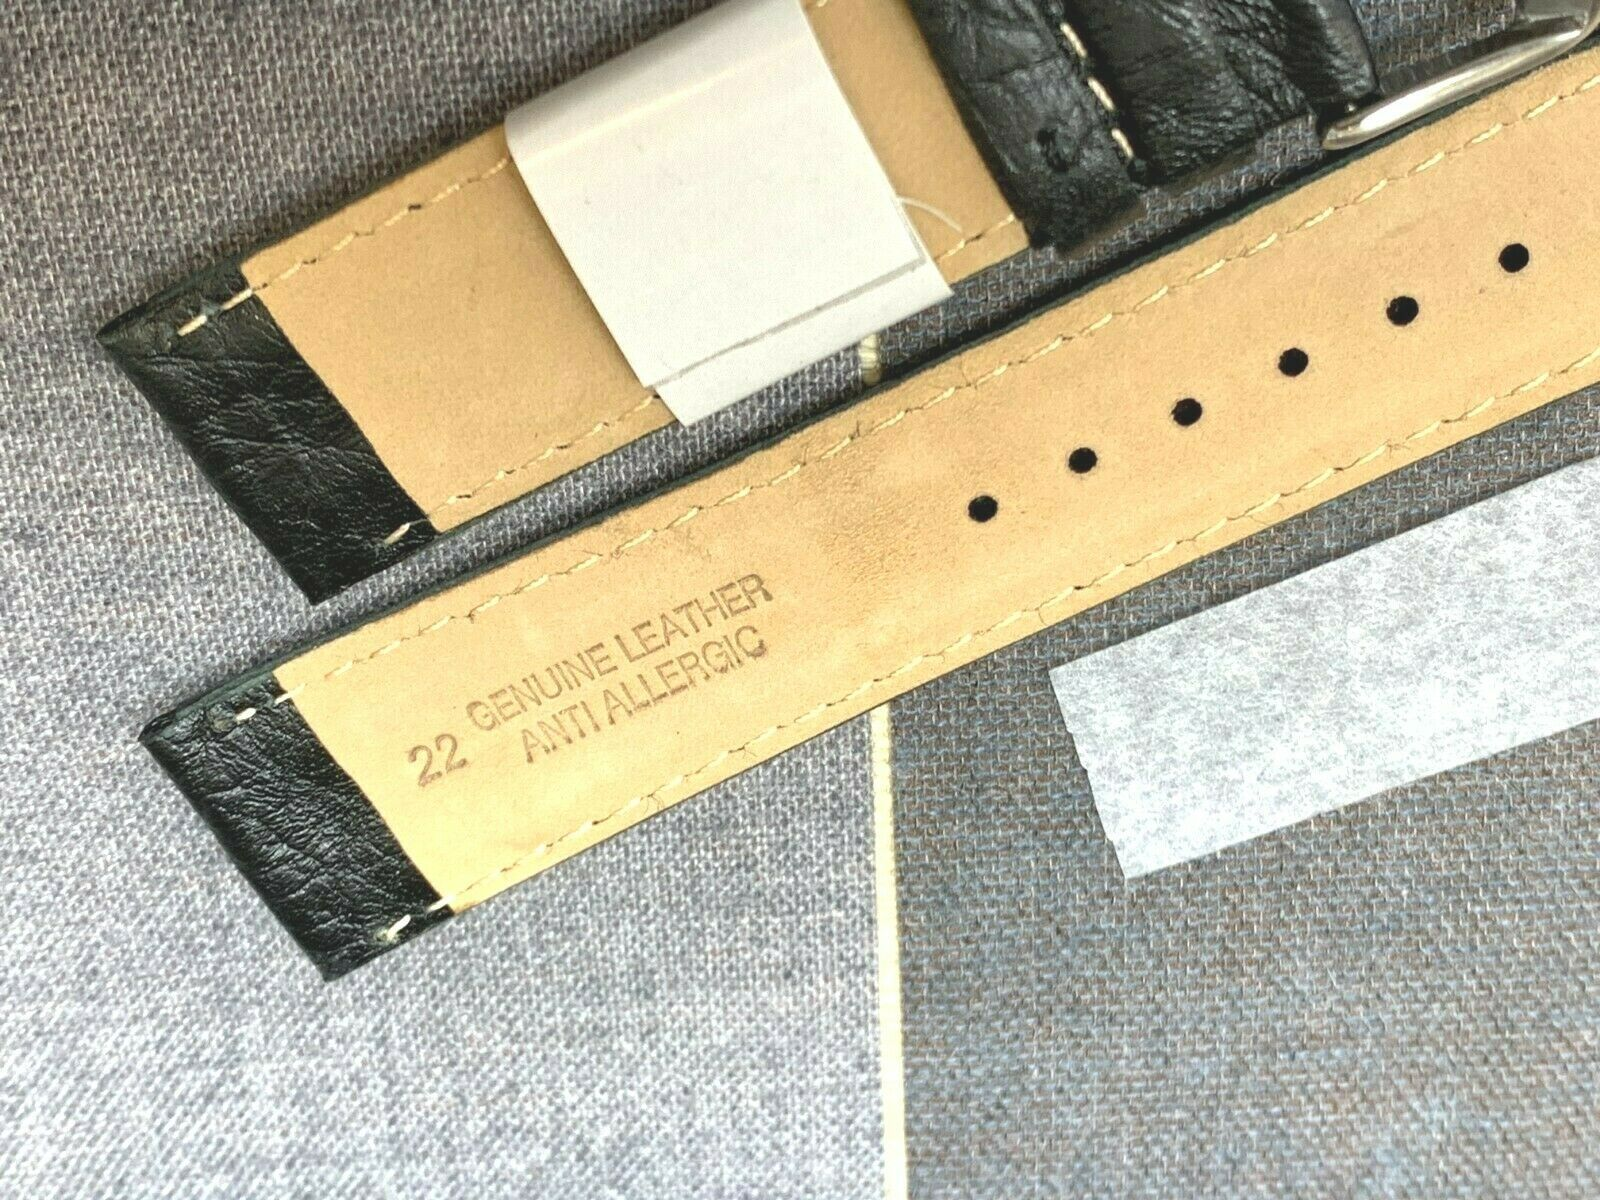 EURO ALFA WATCH BAND GENUINE LEATHER FOR KENNETH COLE DOUBLE HUMP 18MM image 3